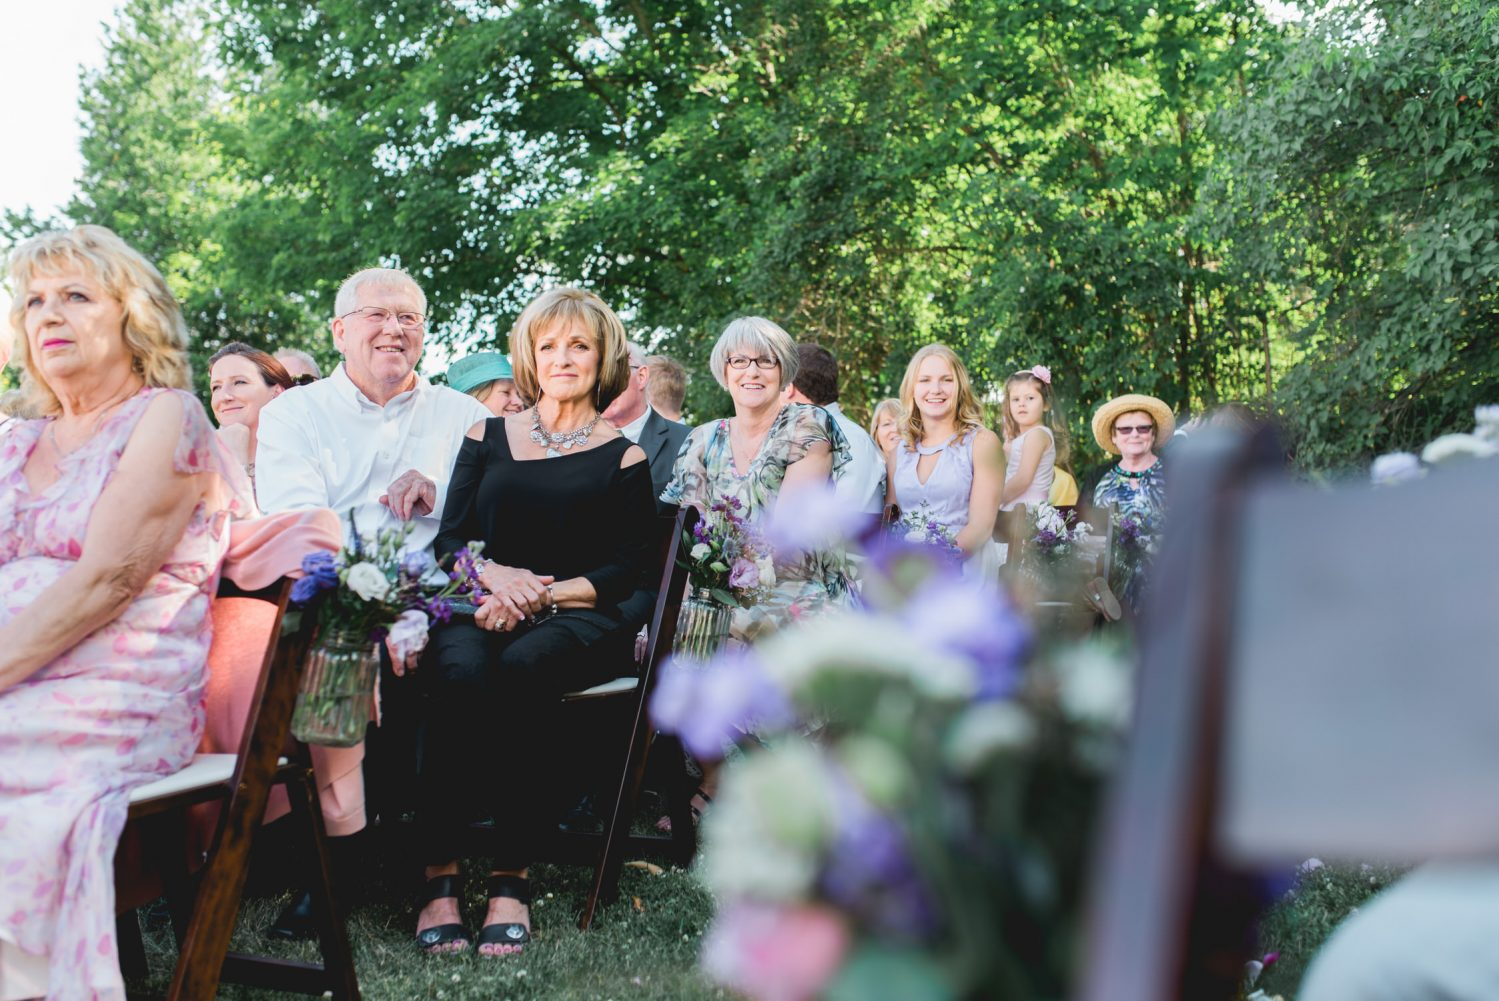 Guests watch wedding ceremony at Alton Mill